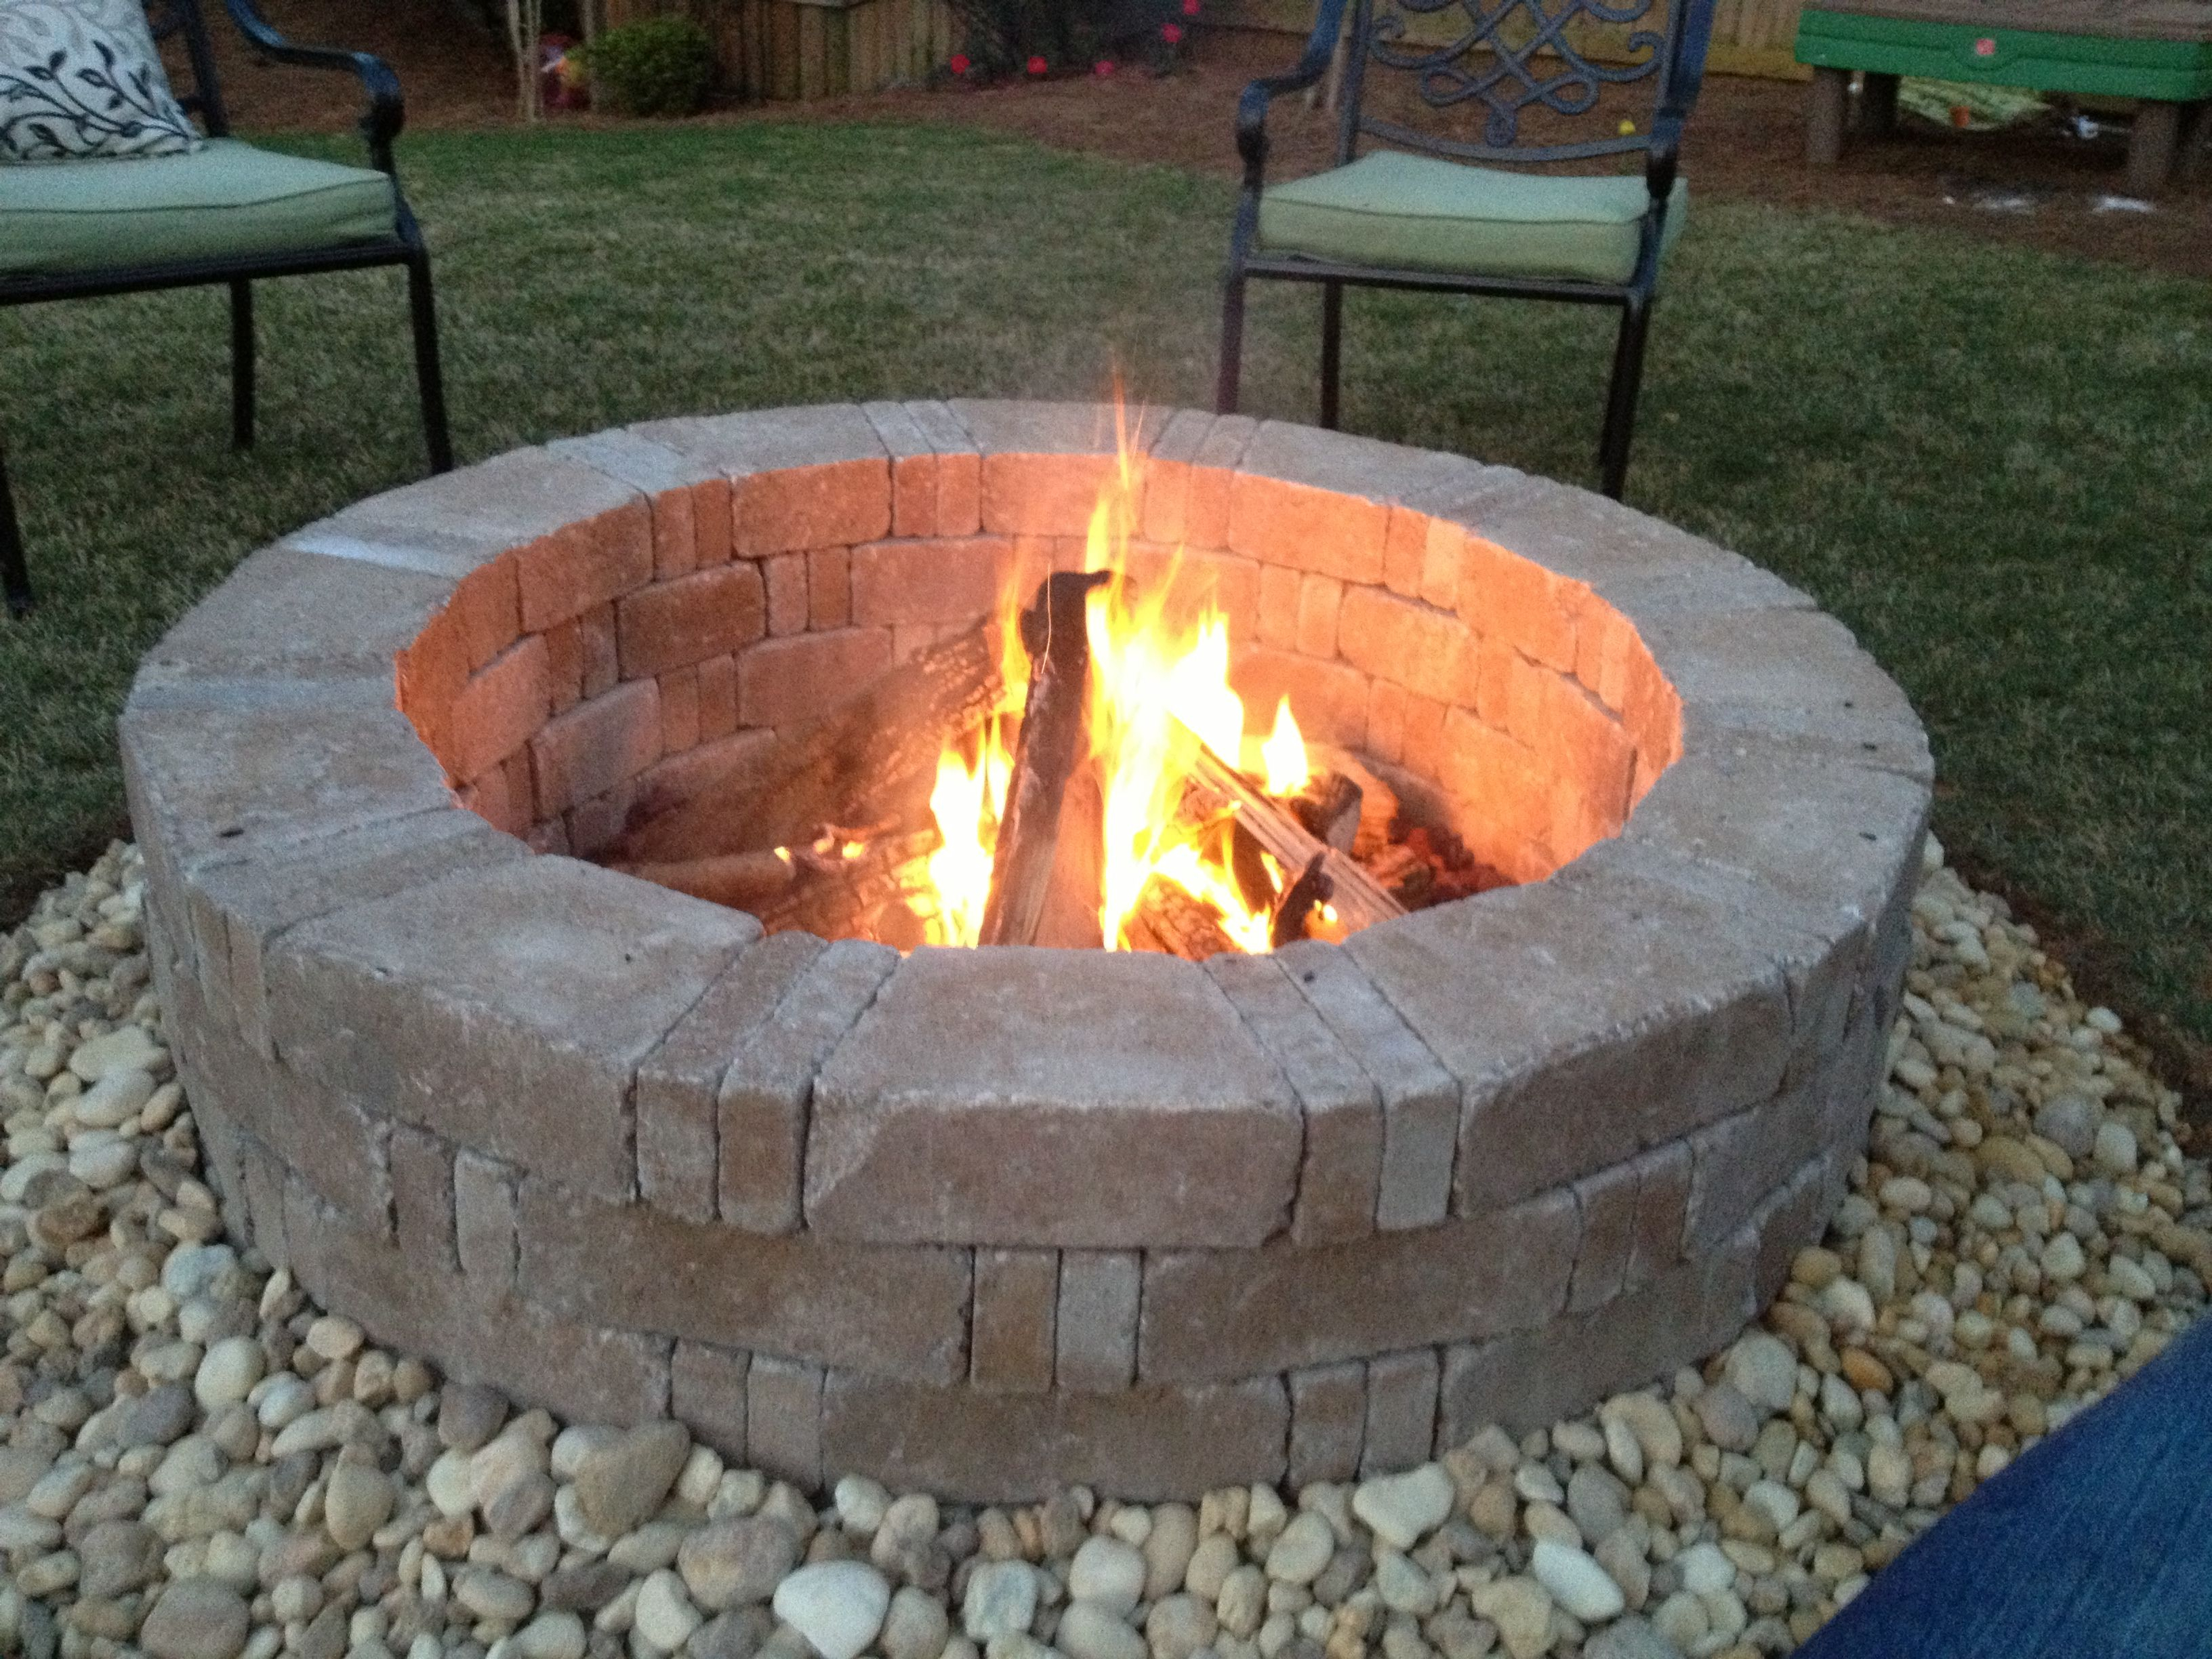 Rumblestone Firepit With River Stone Surround And Red Lava Rock within dimensions 3264 X 2448